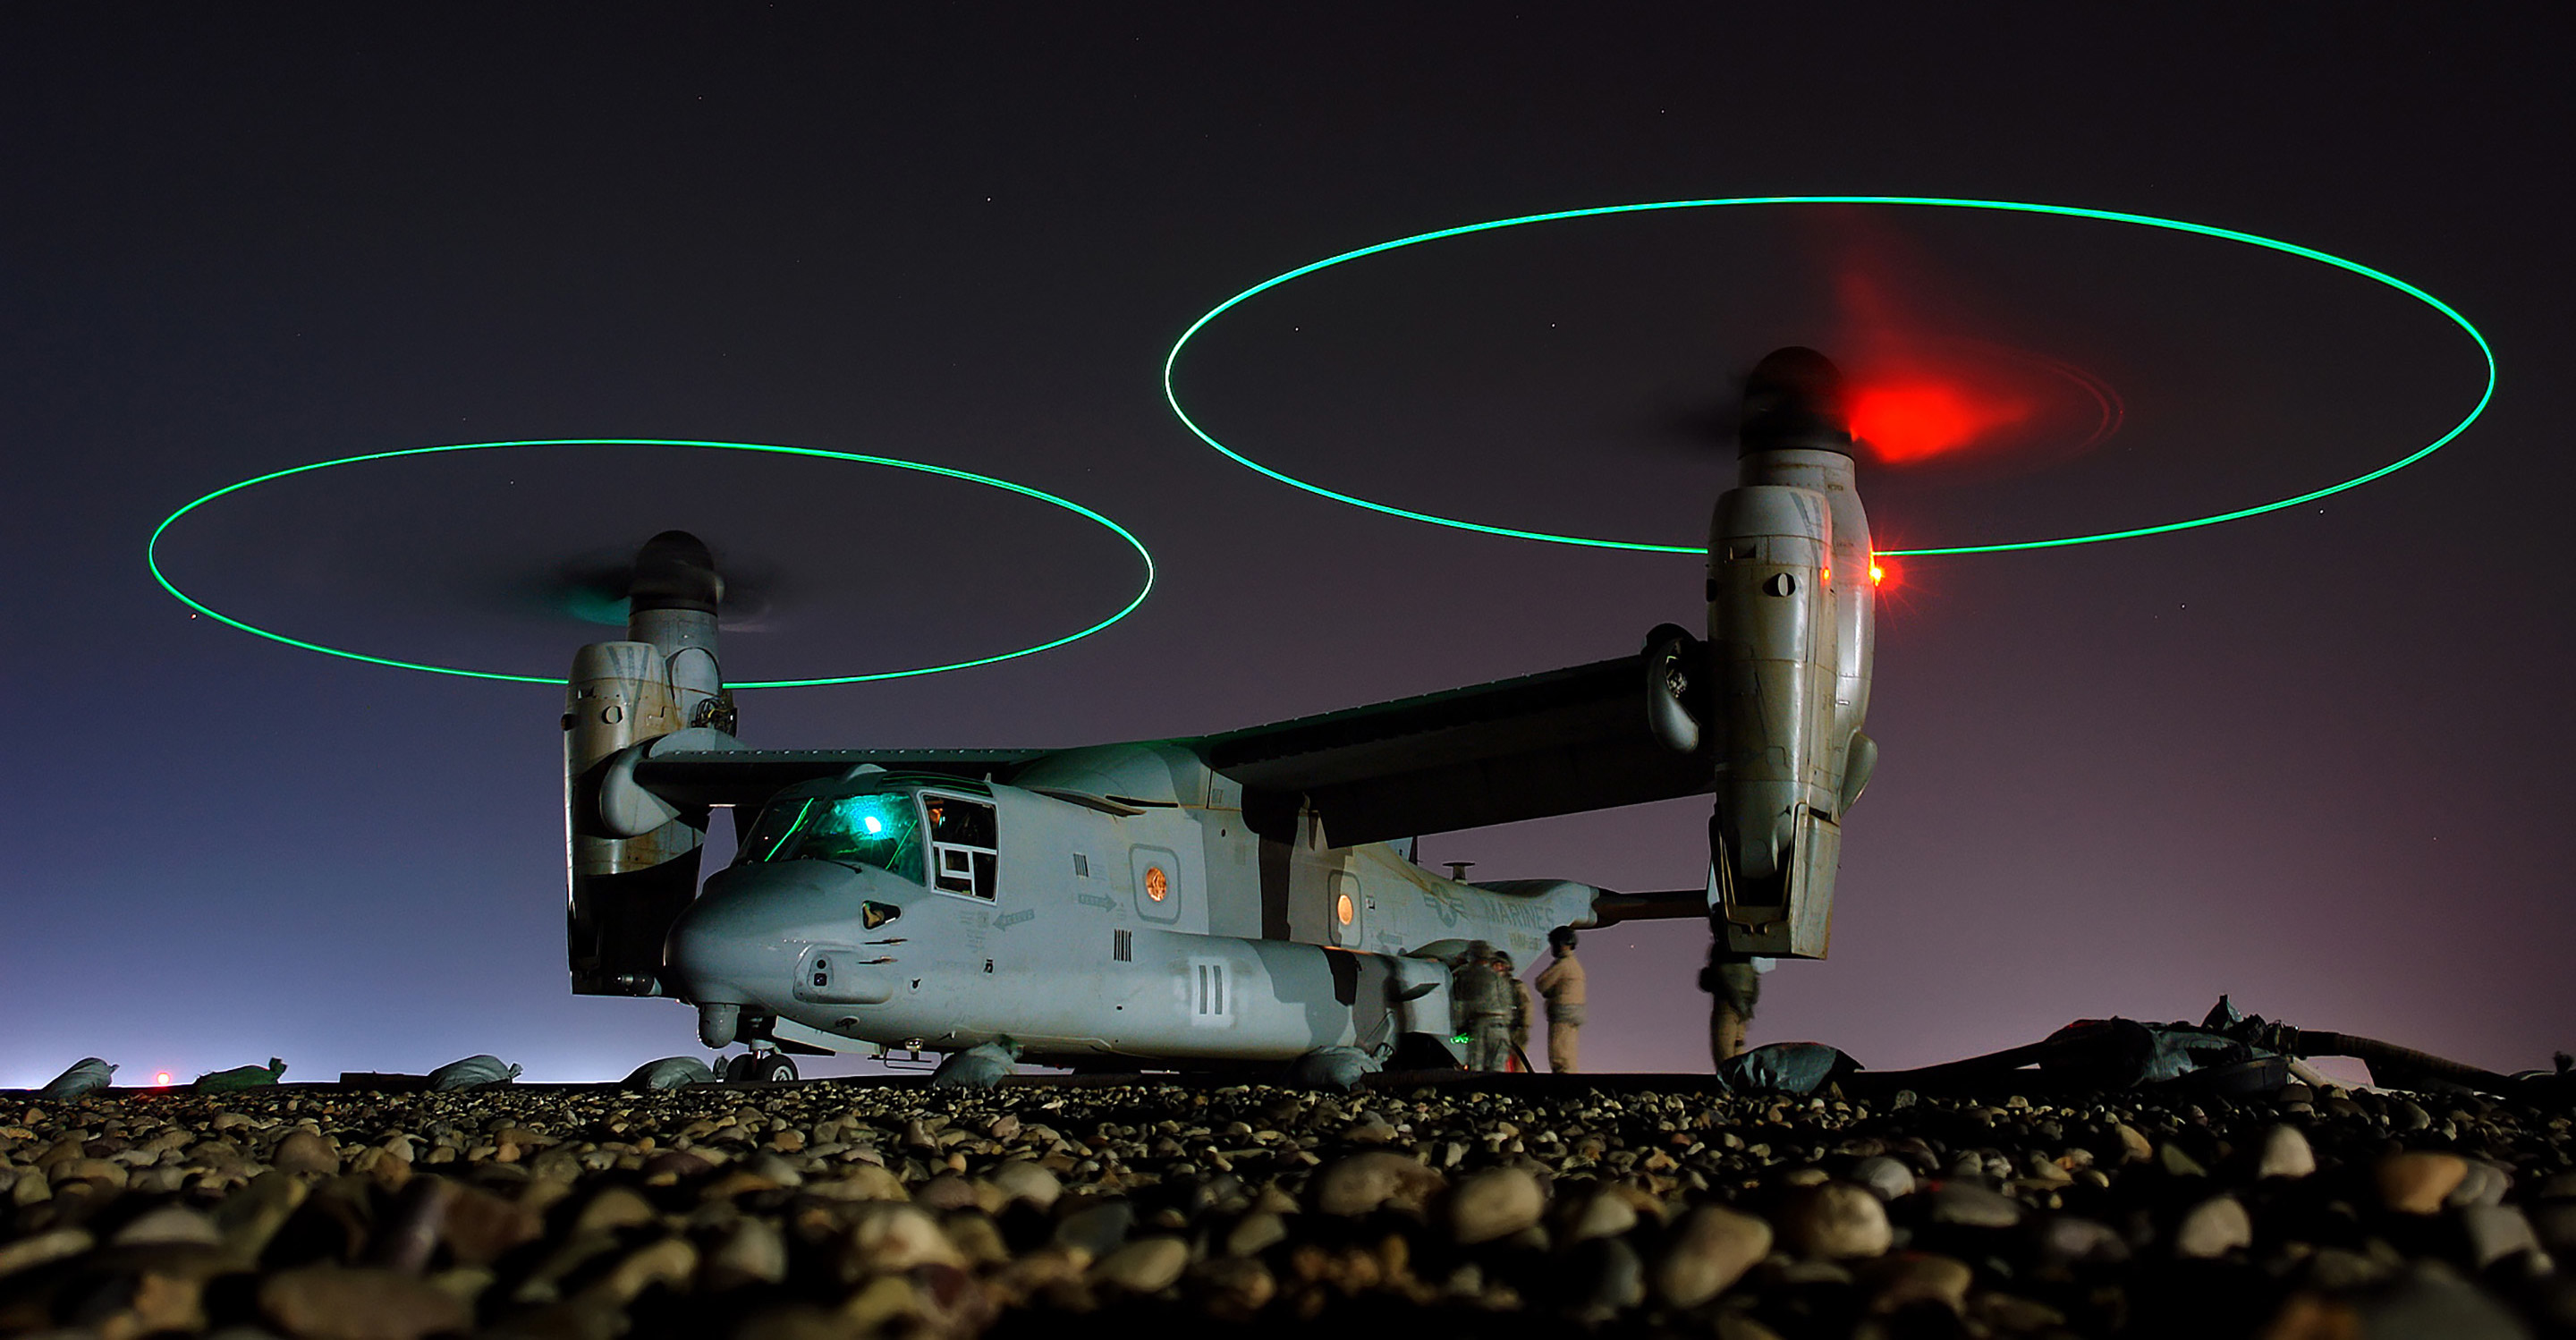 Crew members refuel an V-22 Osprey before a night mission in central Iraq.Photo: U.S Navy/Chief Petty Officer Joe Kane